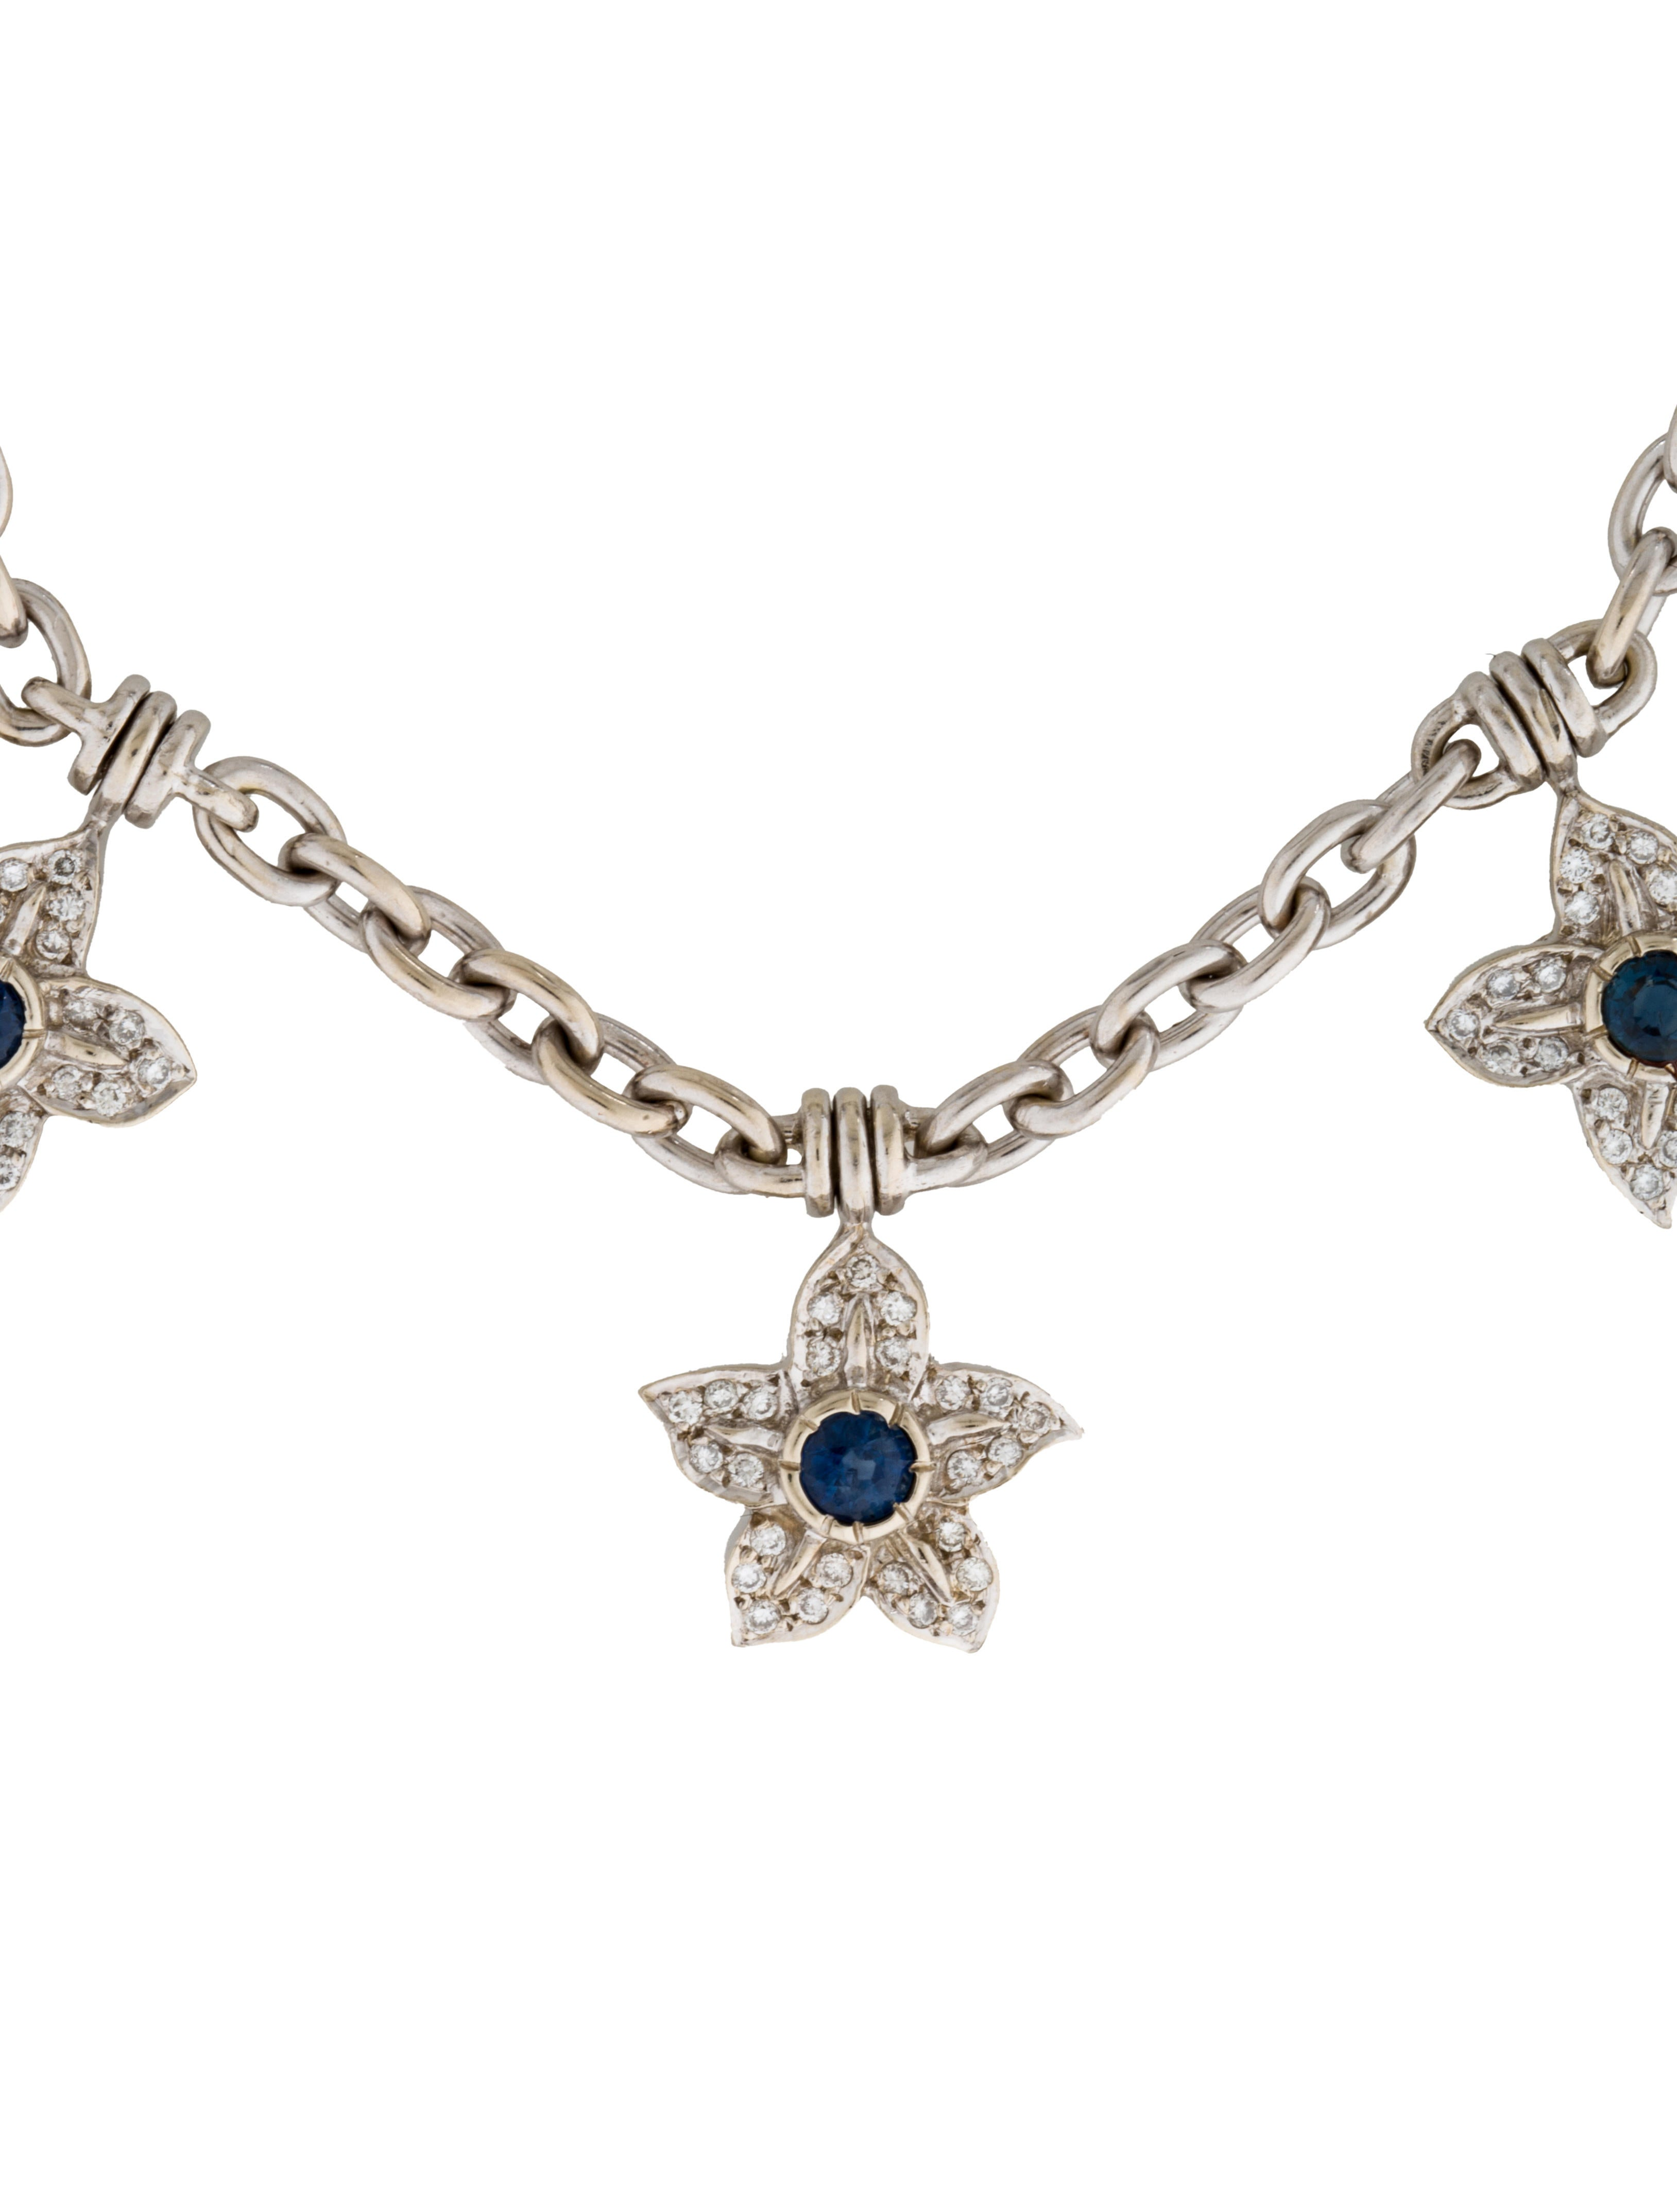 Fine jewelry necklace 14k diamond sapphire flower collar for Fine jewelry diamond pendants